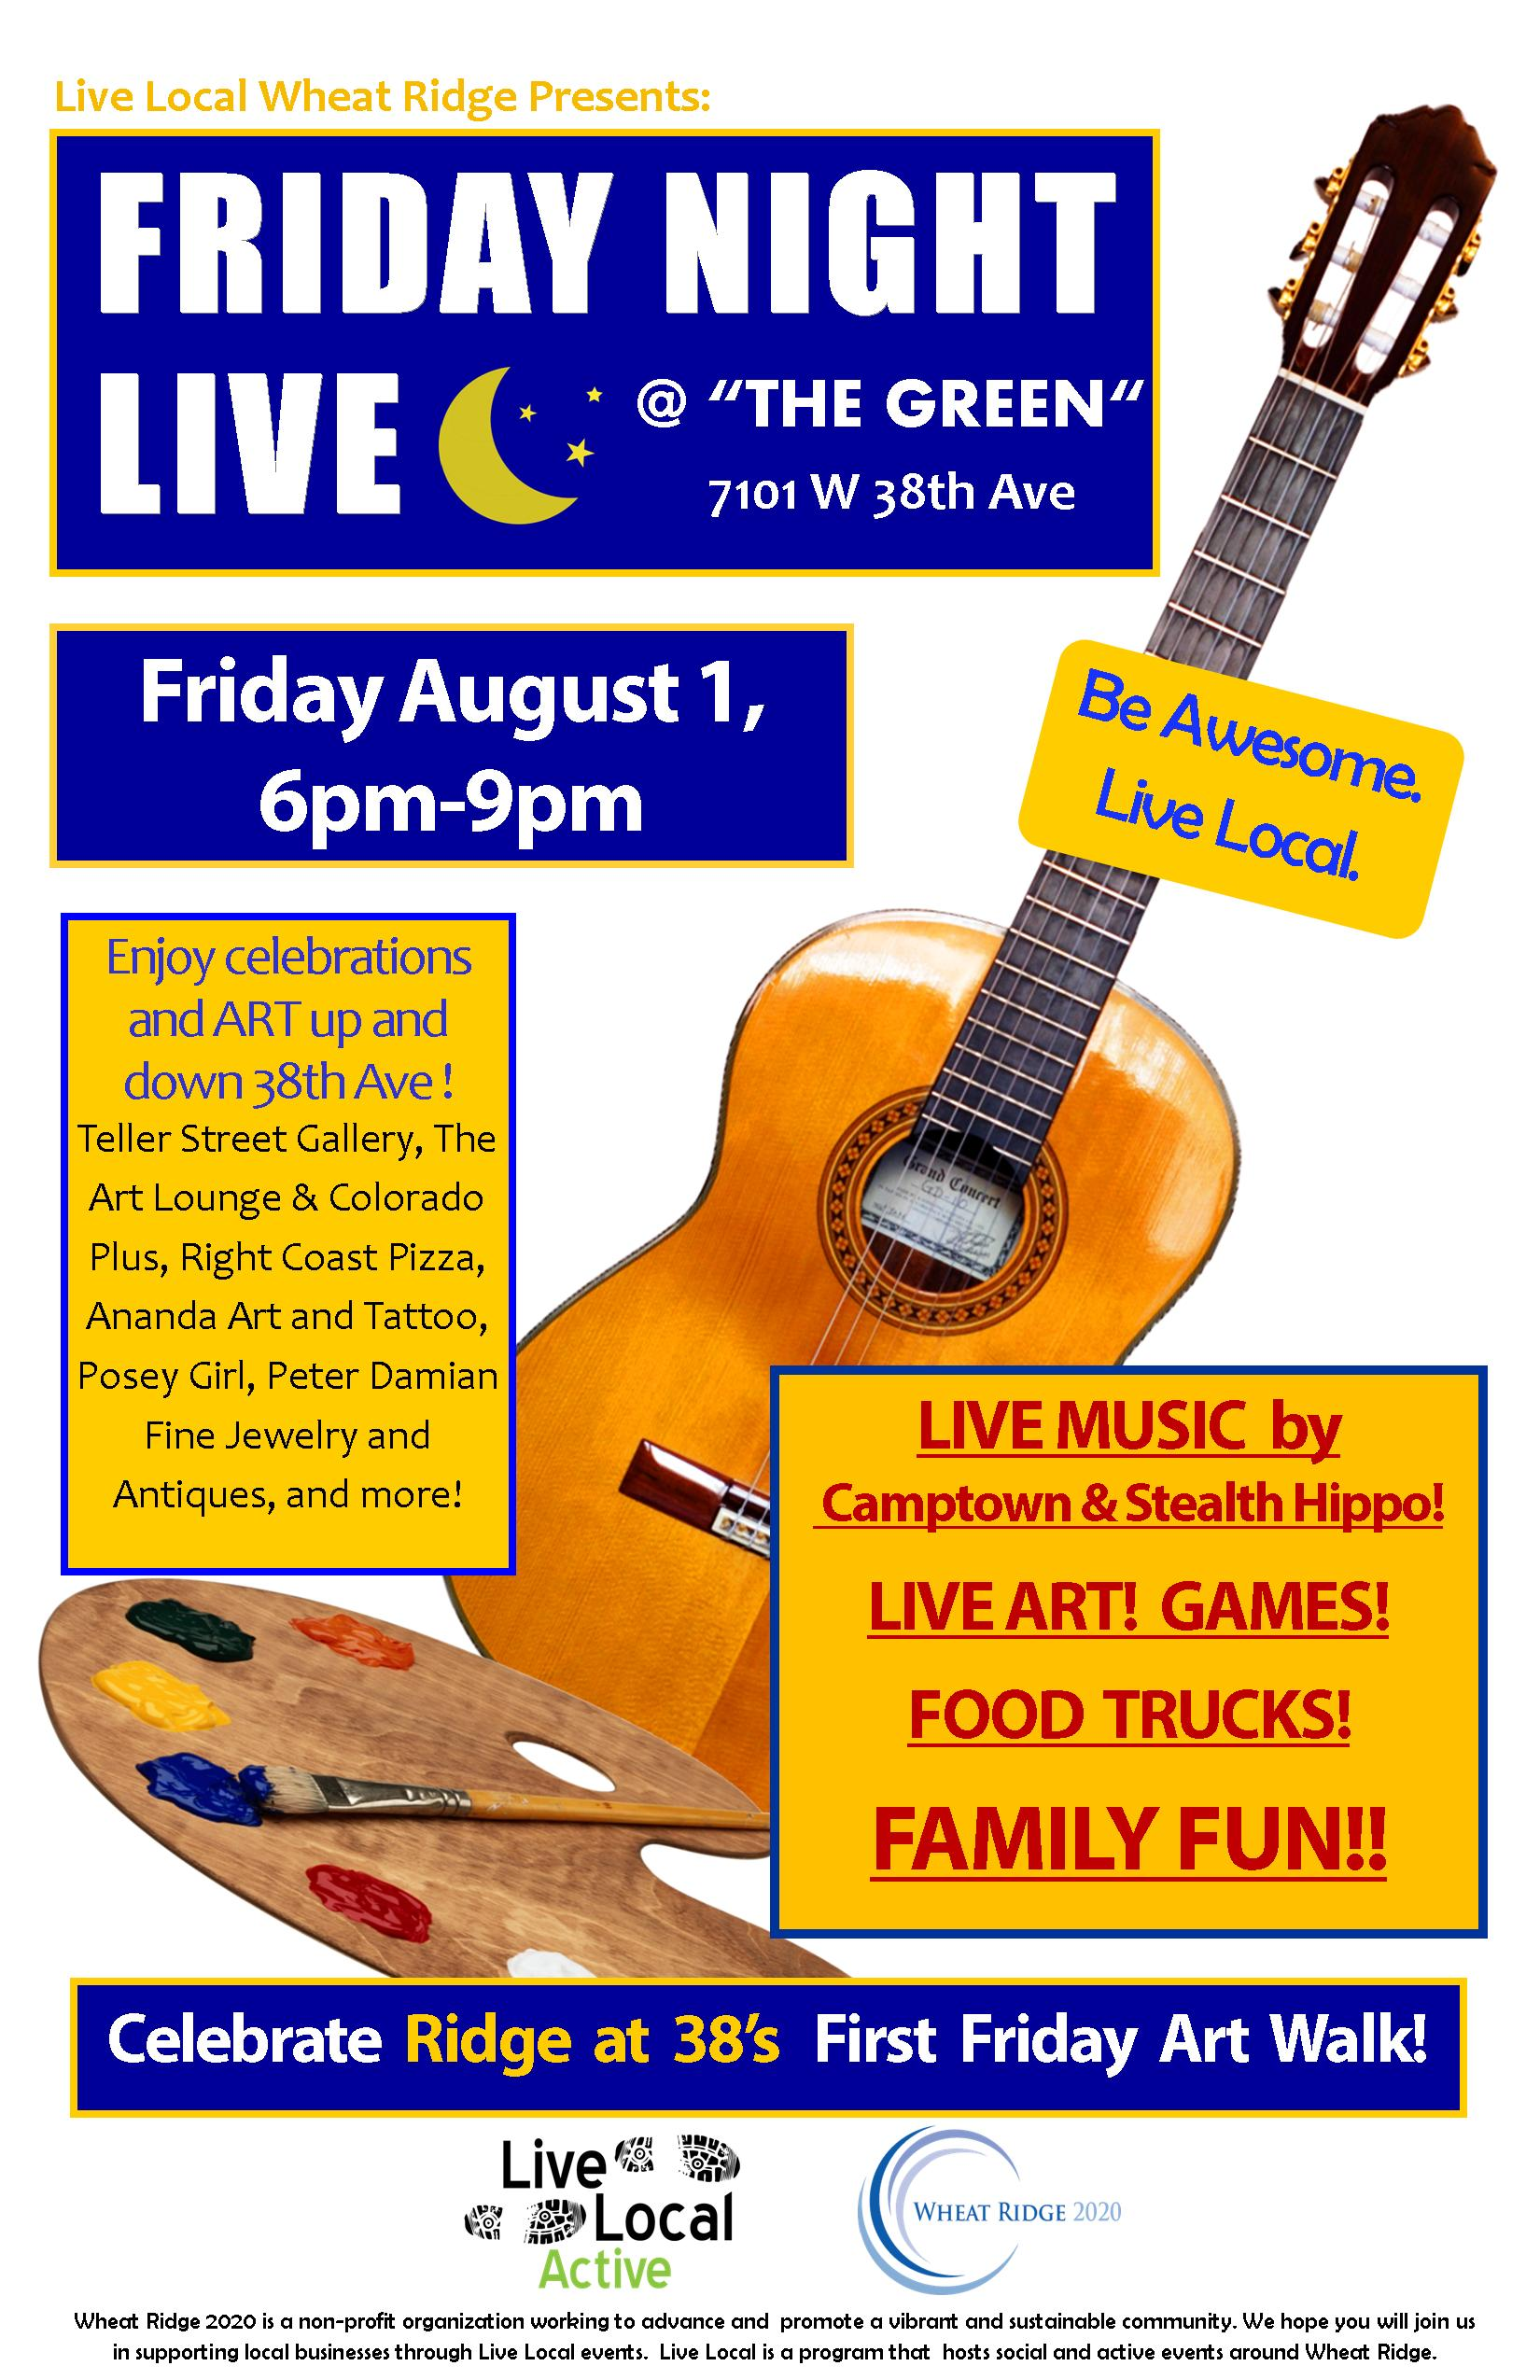 Friday Night Live 8-1-14